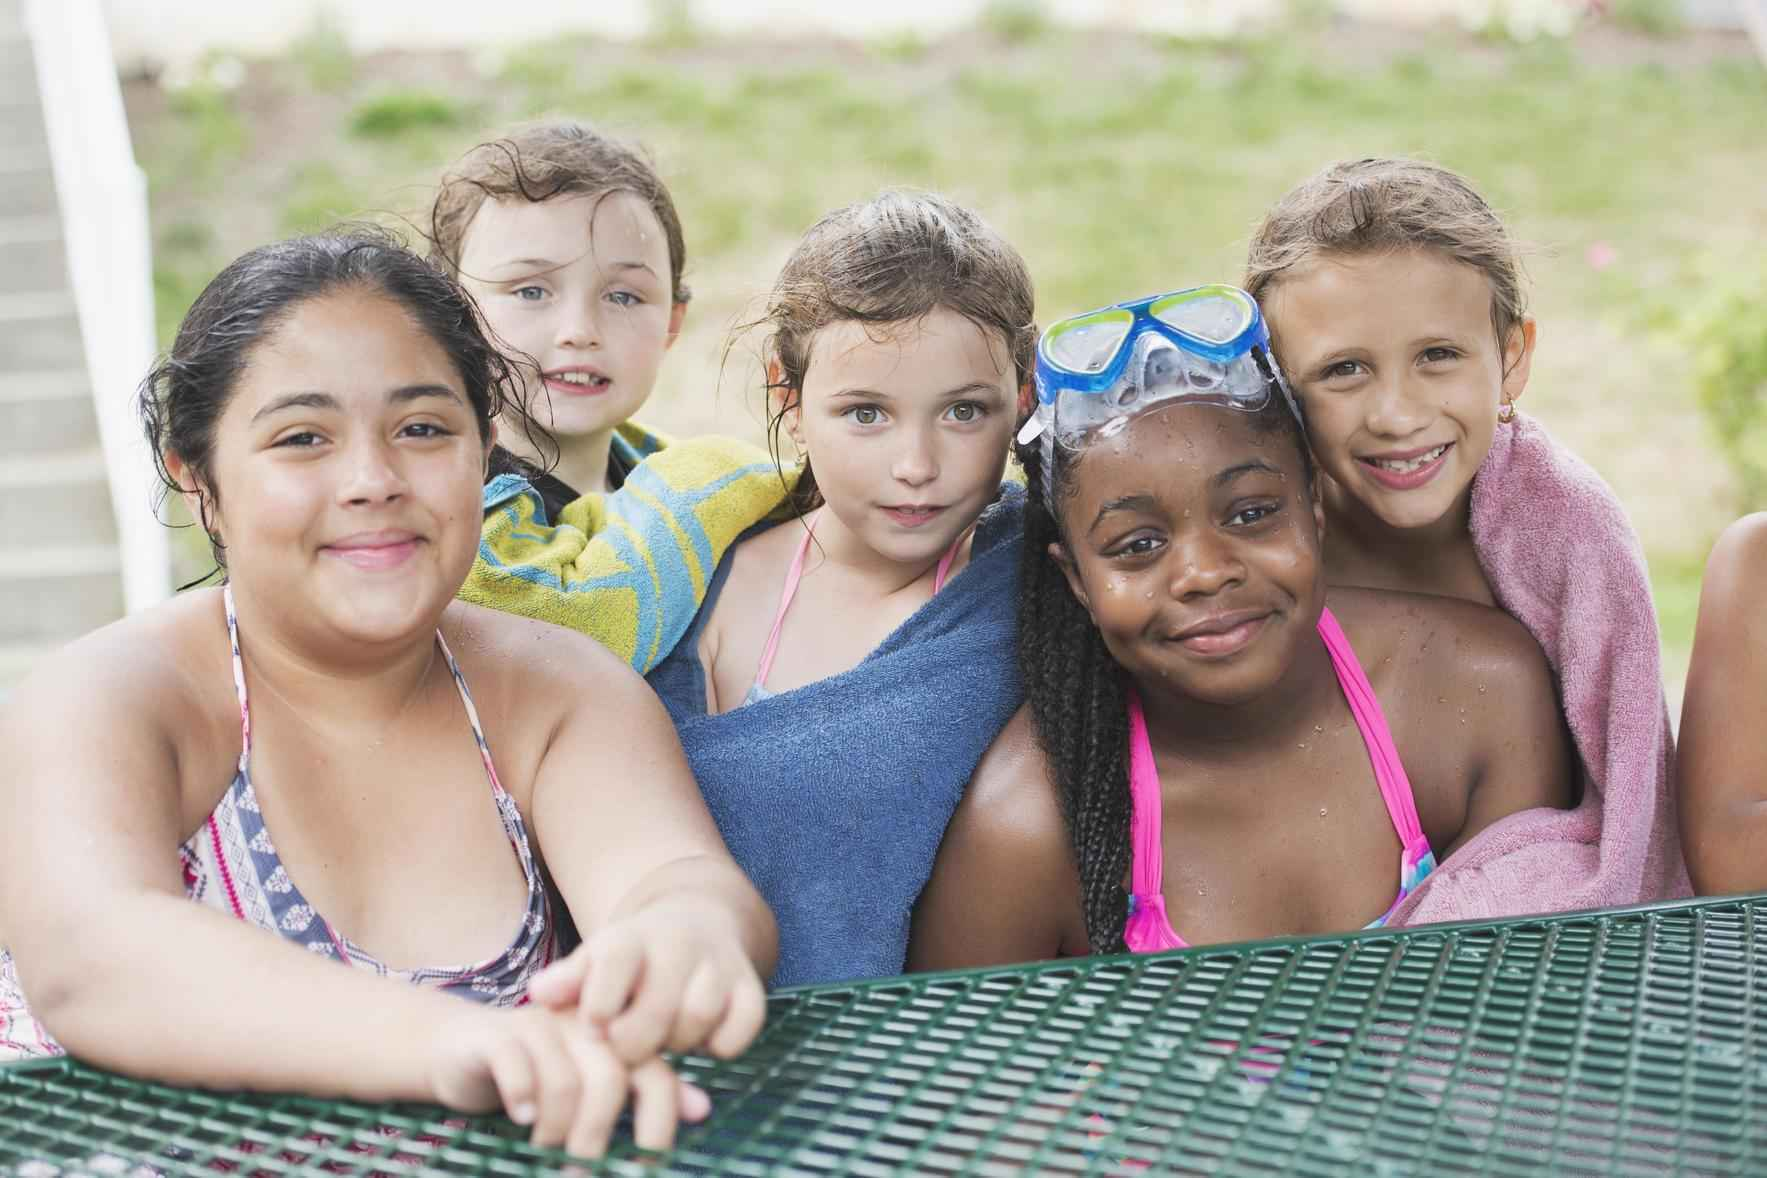 Become a member to champion our local girls. With a monthly donation of any amount, you will provide quality programming, nutritious food, books or enrichment to our campers. Sponsor a camper or an entire cabin for one session.  image